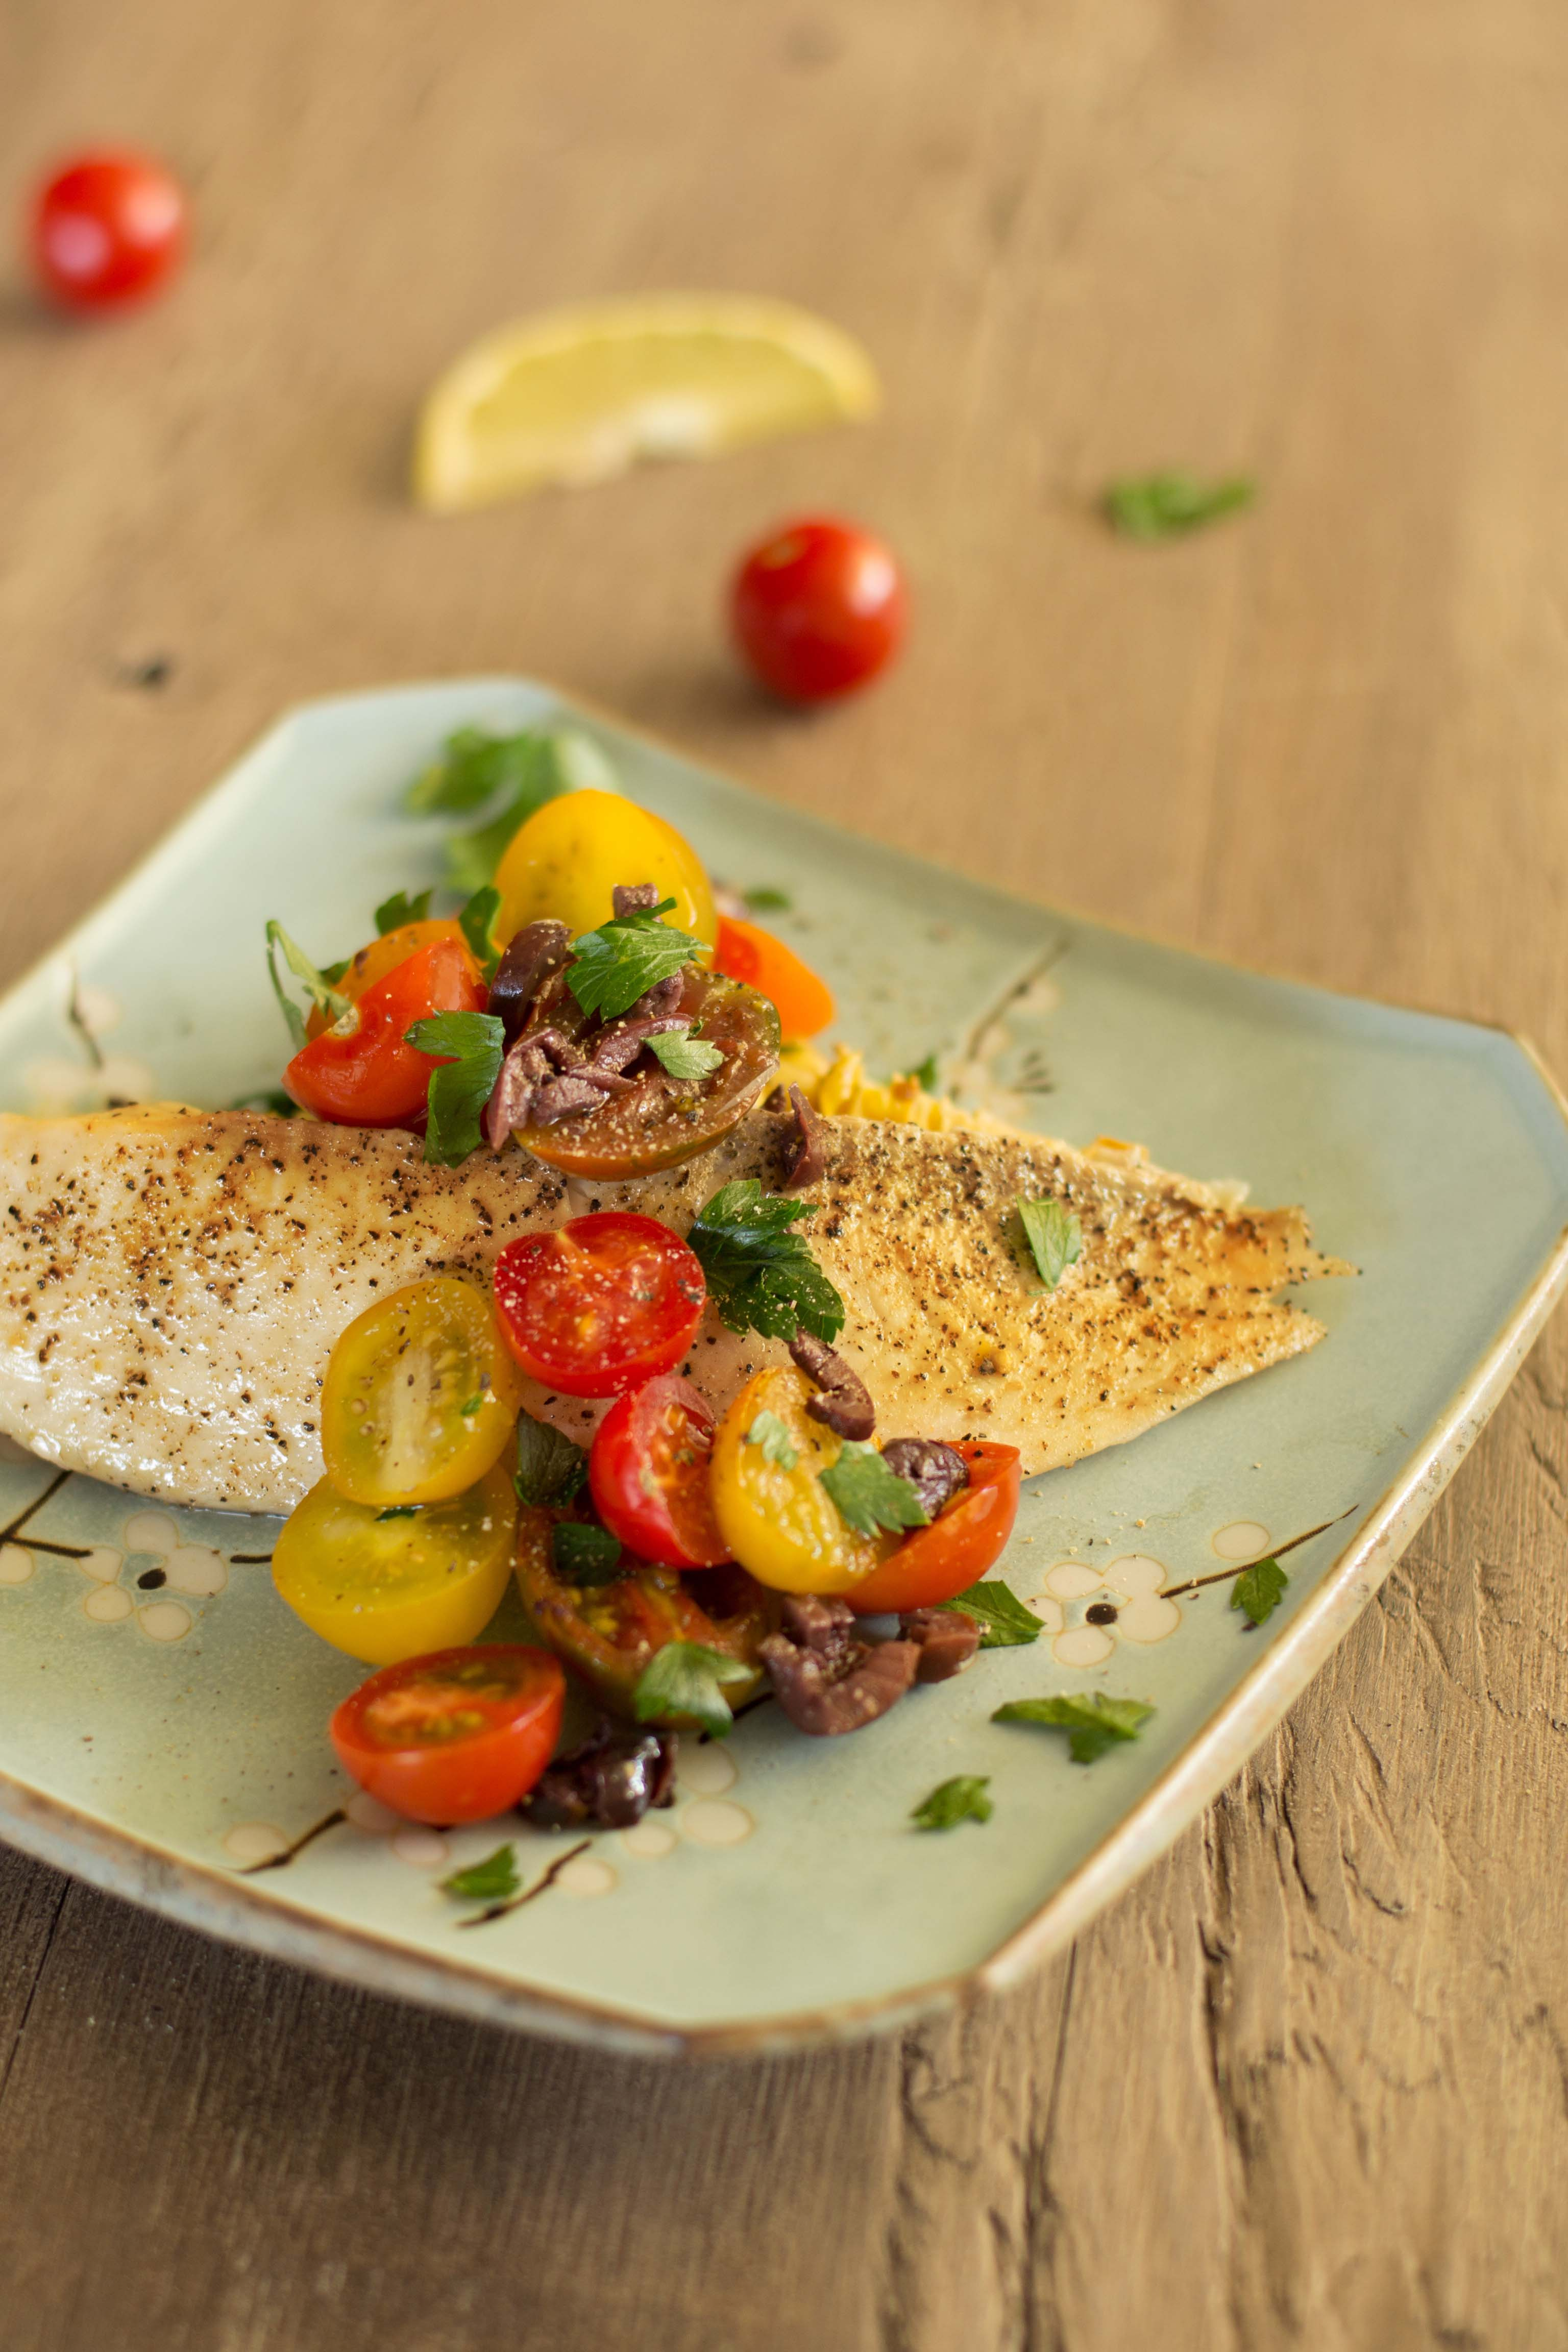 Slow-Roasted-Fish-with-Artichokes-and-Tomatoes